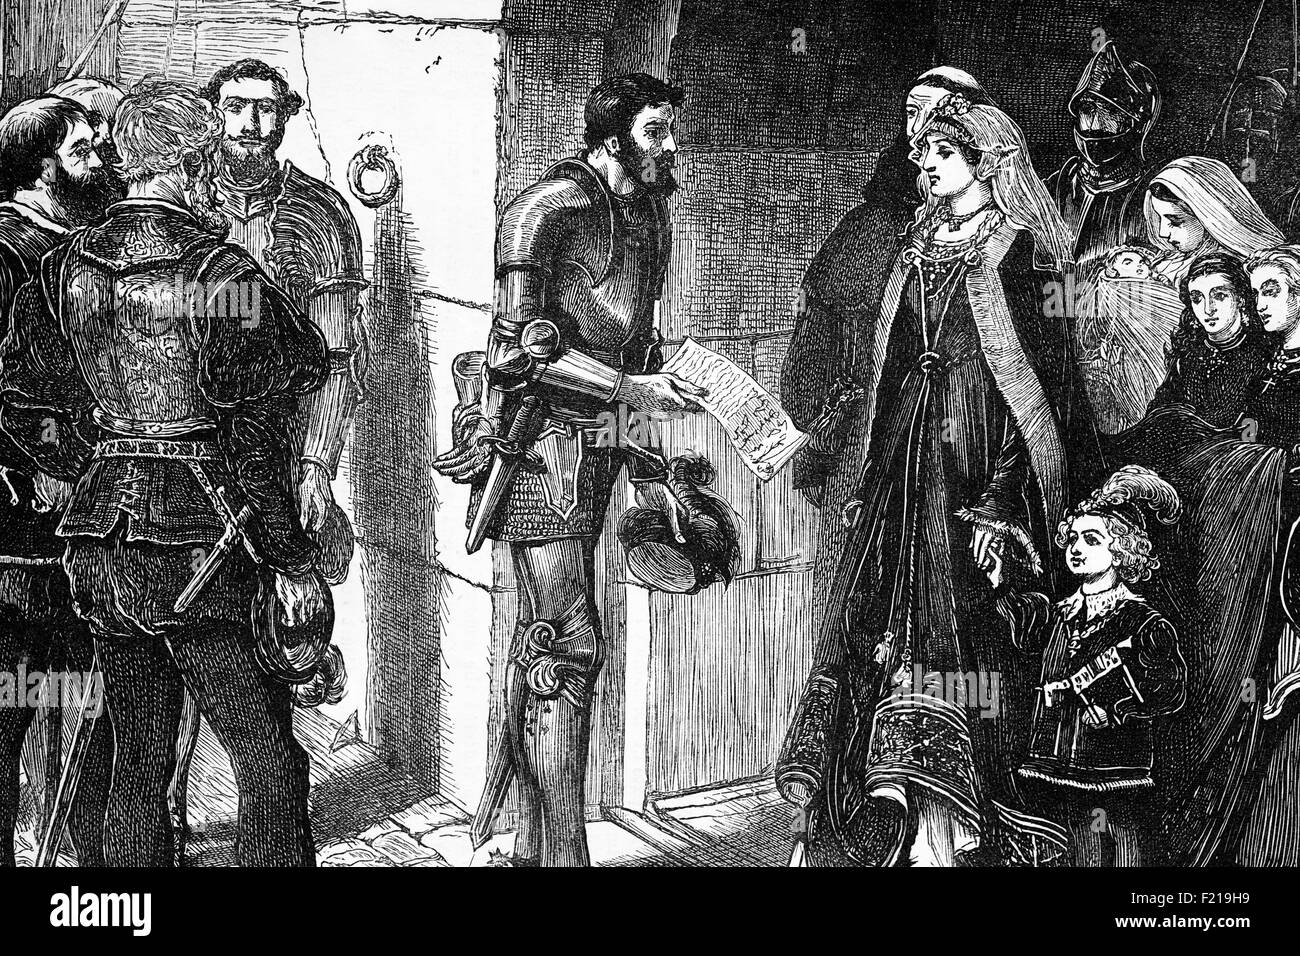 1515, Scotch peers demand the children of Queen Margaret,daughter of Henry VII of England, part of the intrigues - Stock Image